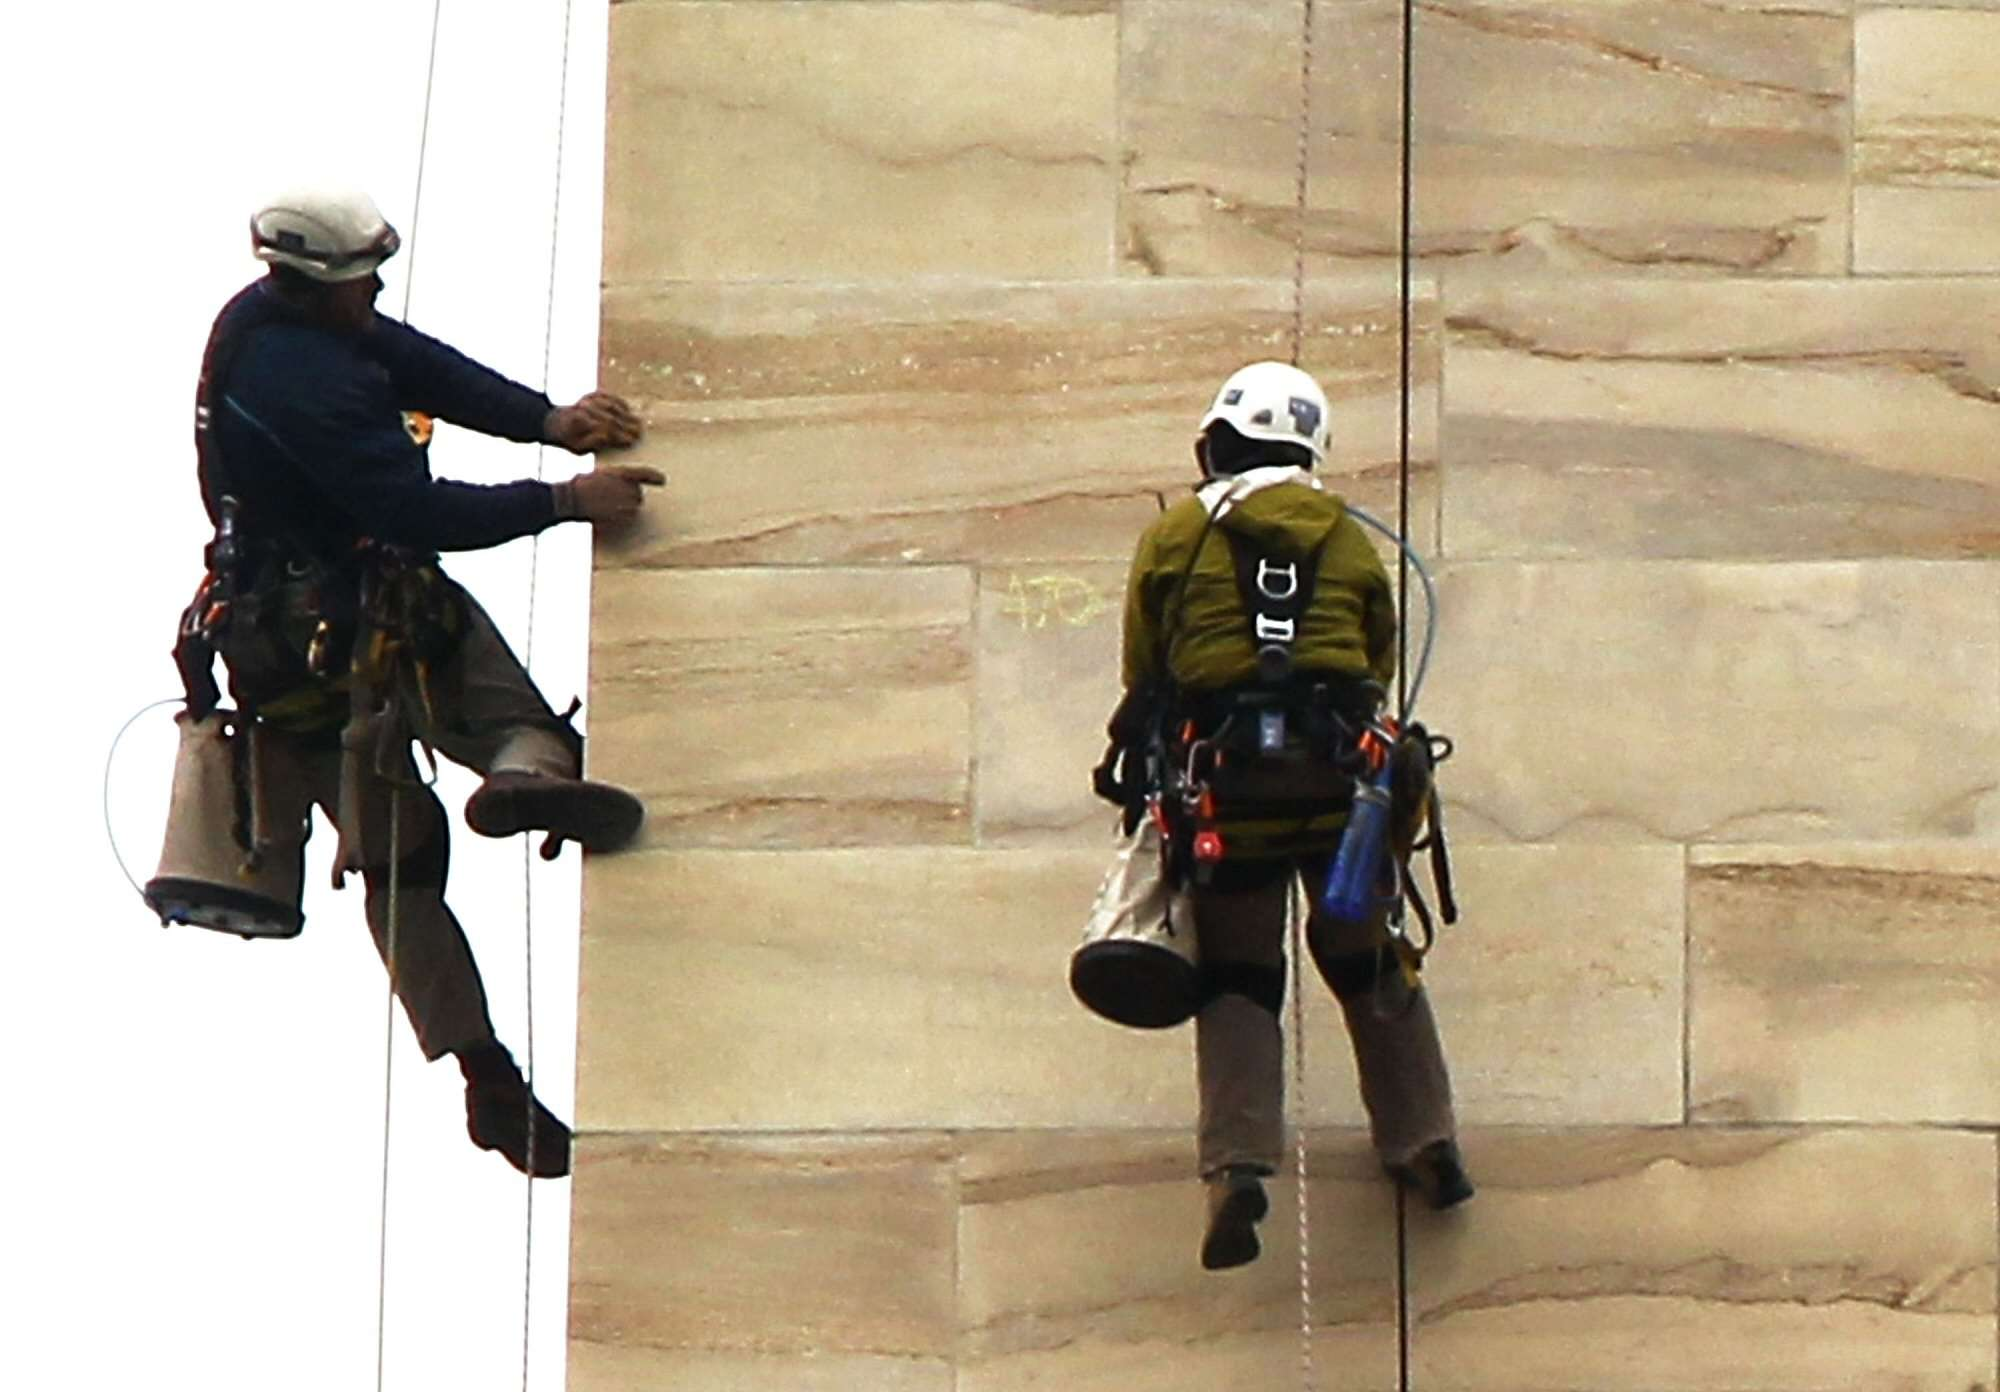 Inspectors hanging from ropes inspecting the exterior stone of the Washington Monument